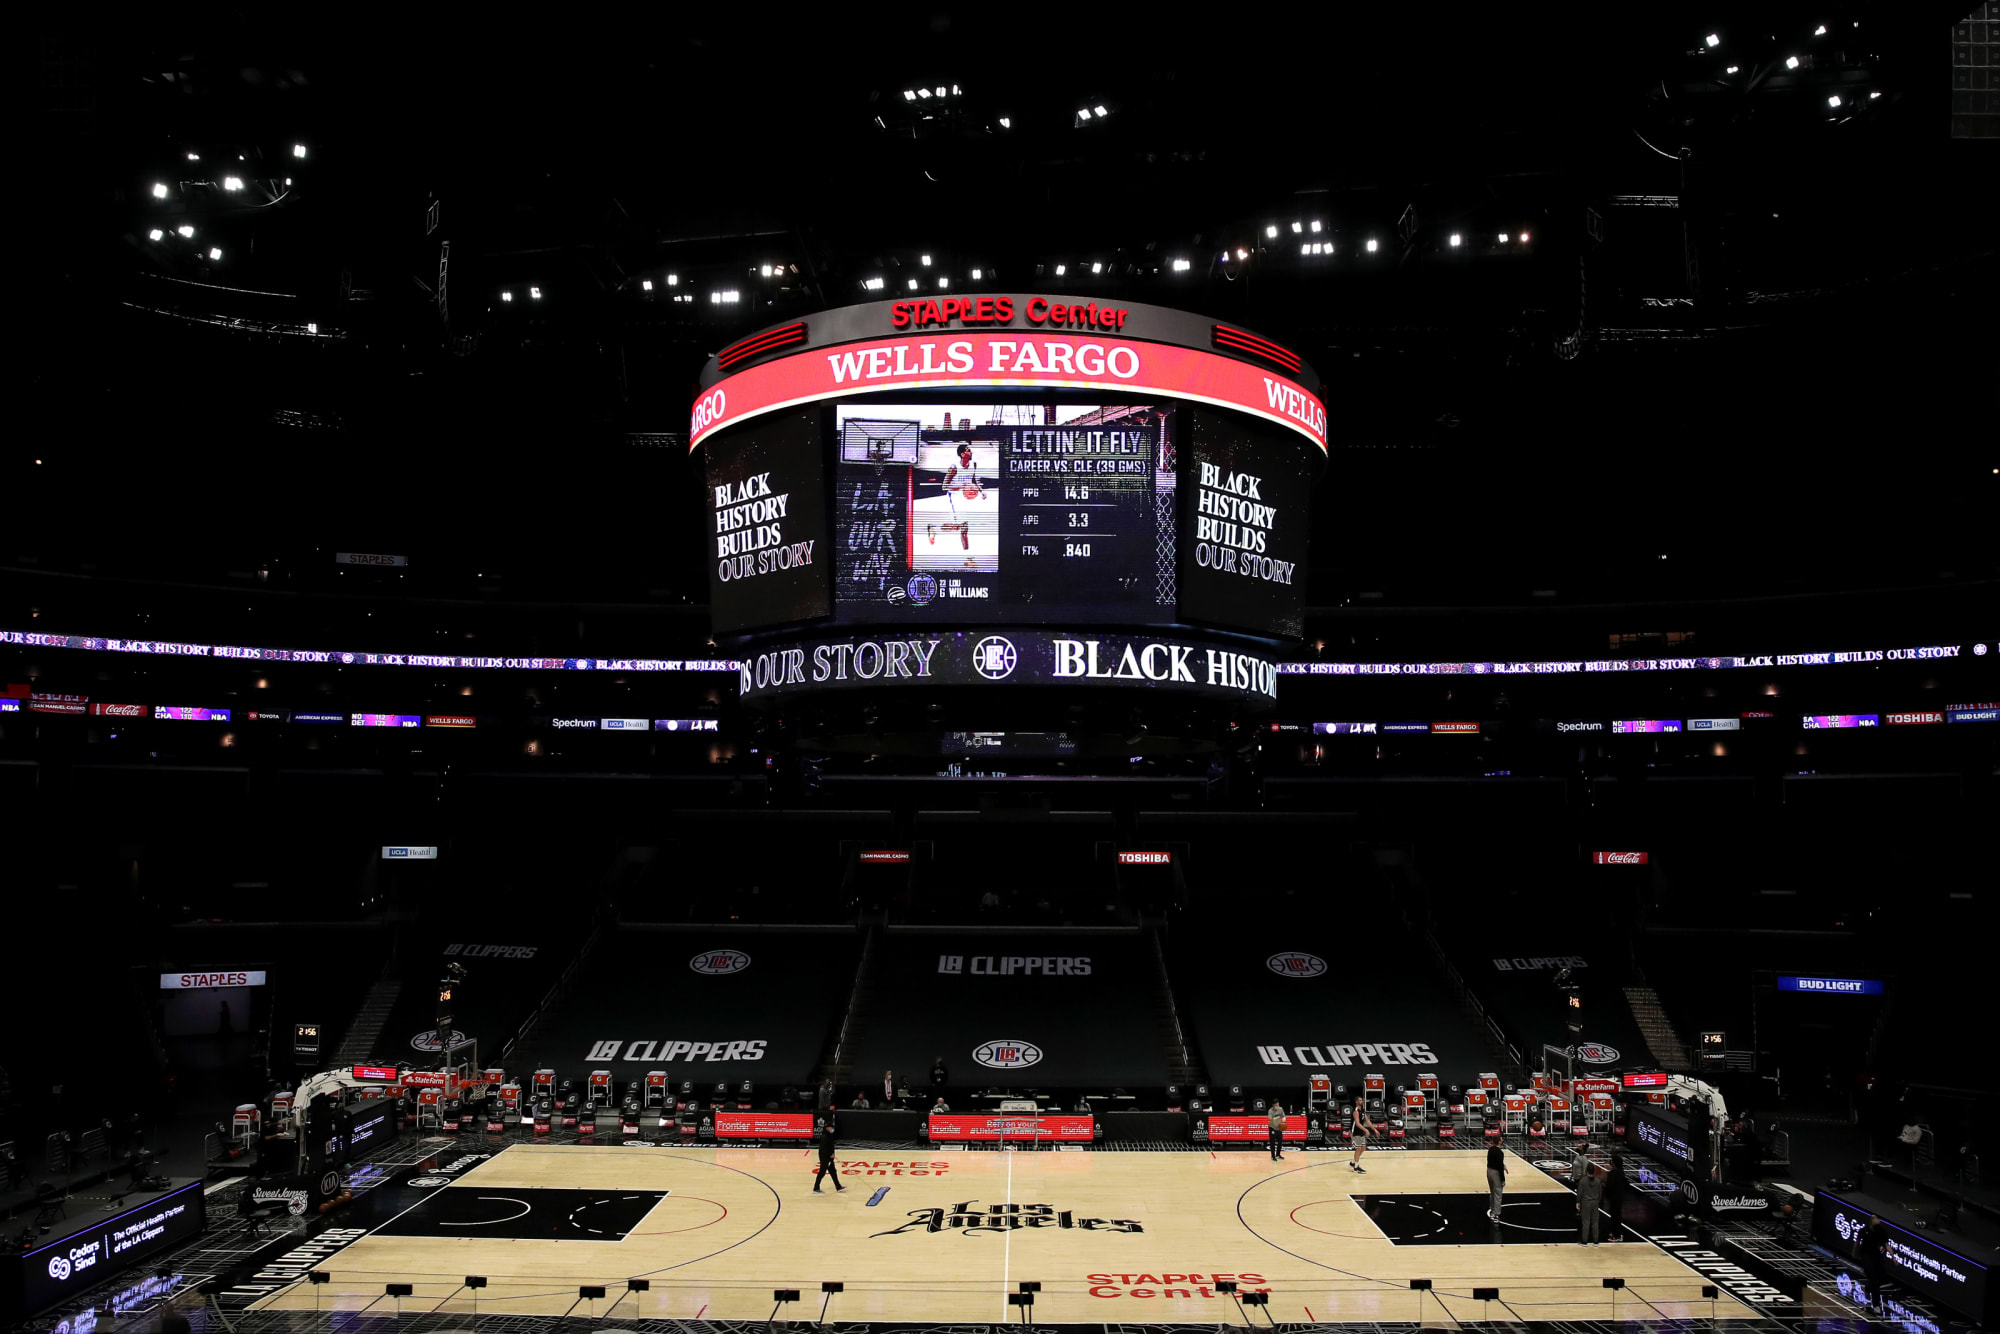 LA Clippers: Fans back in the arena is a welcome sight